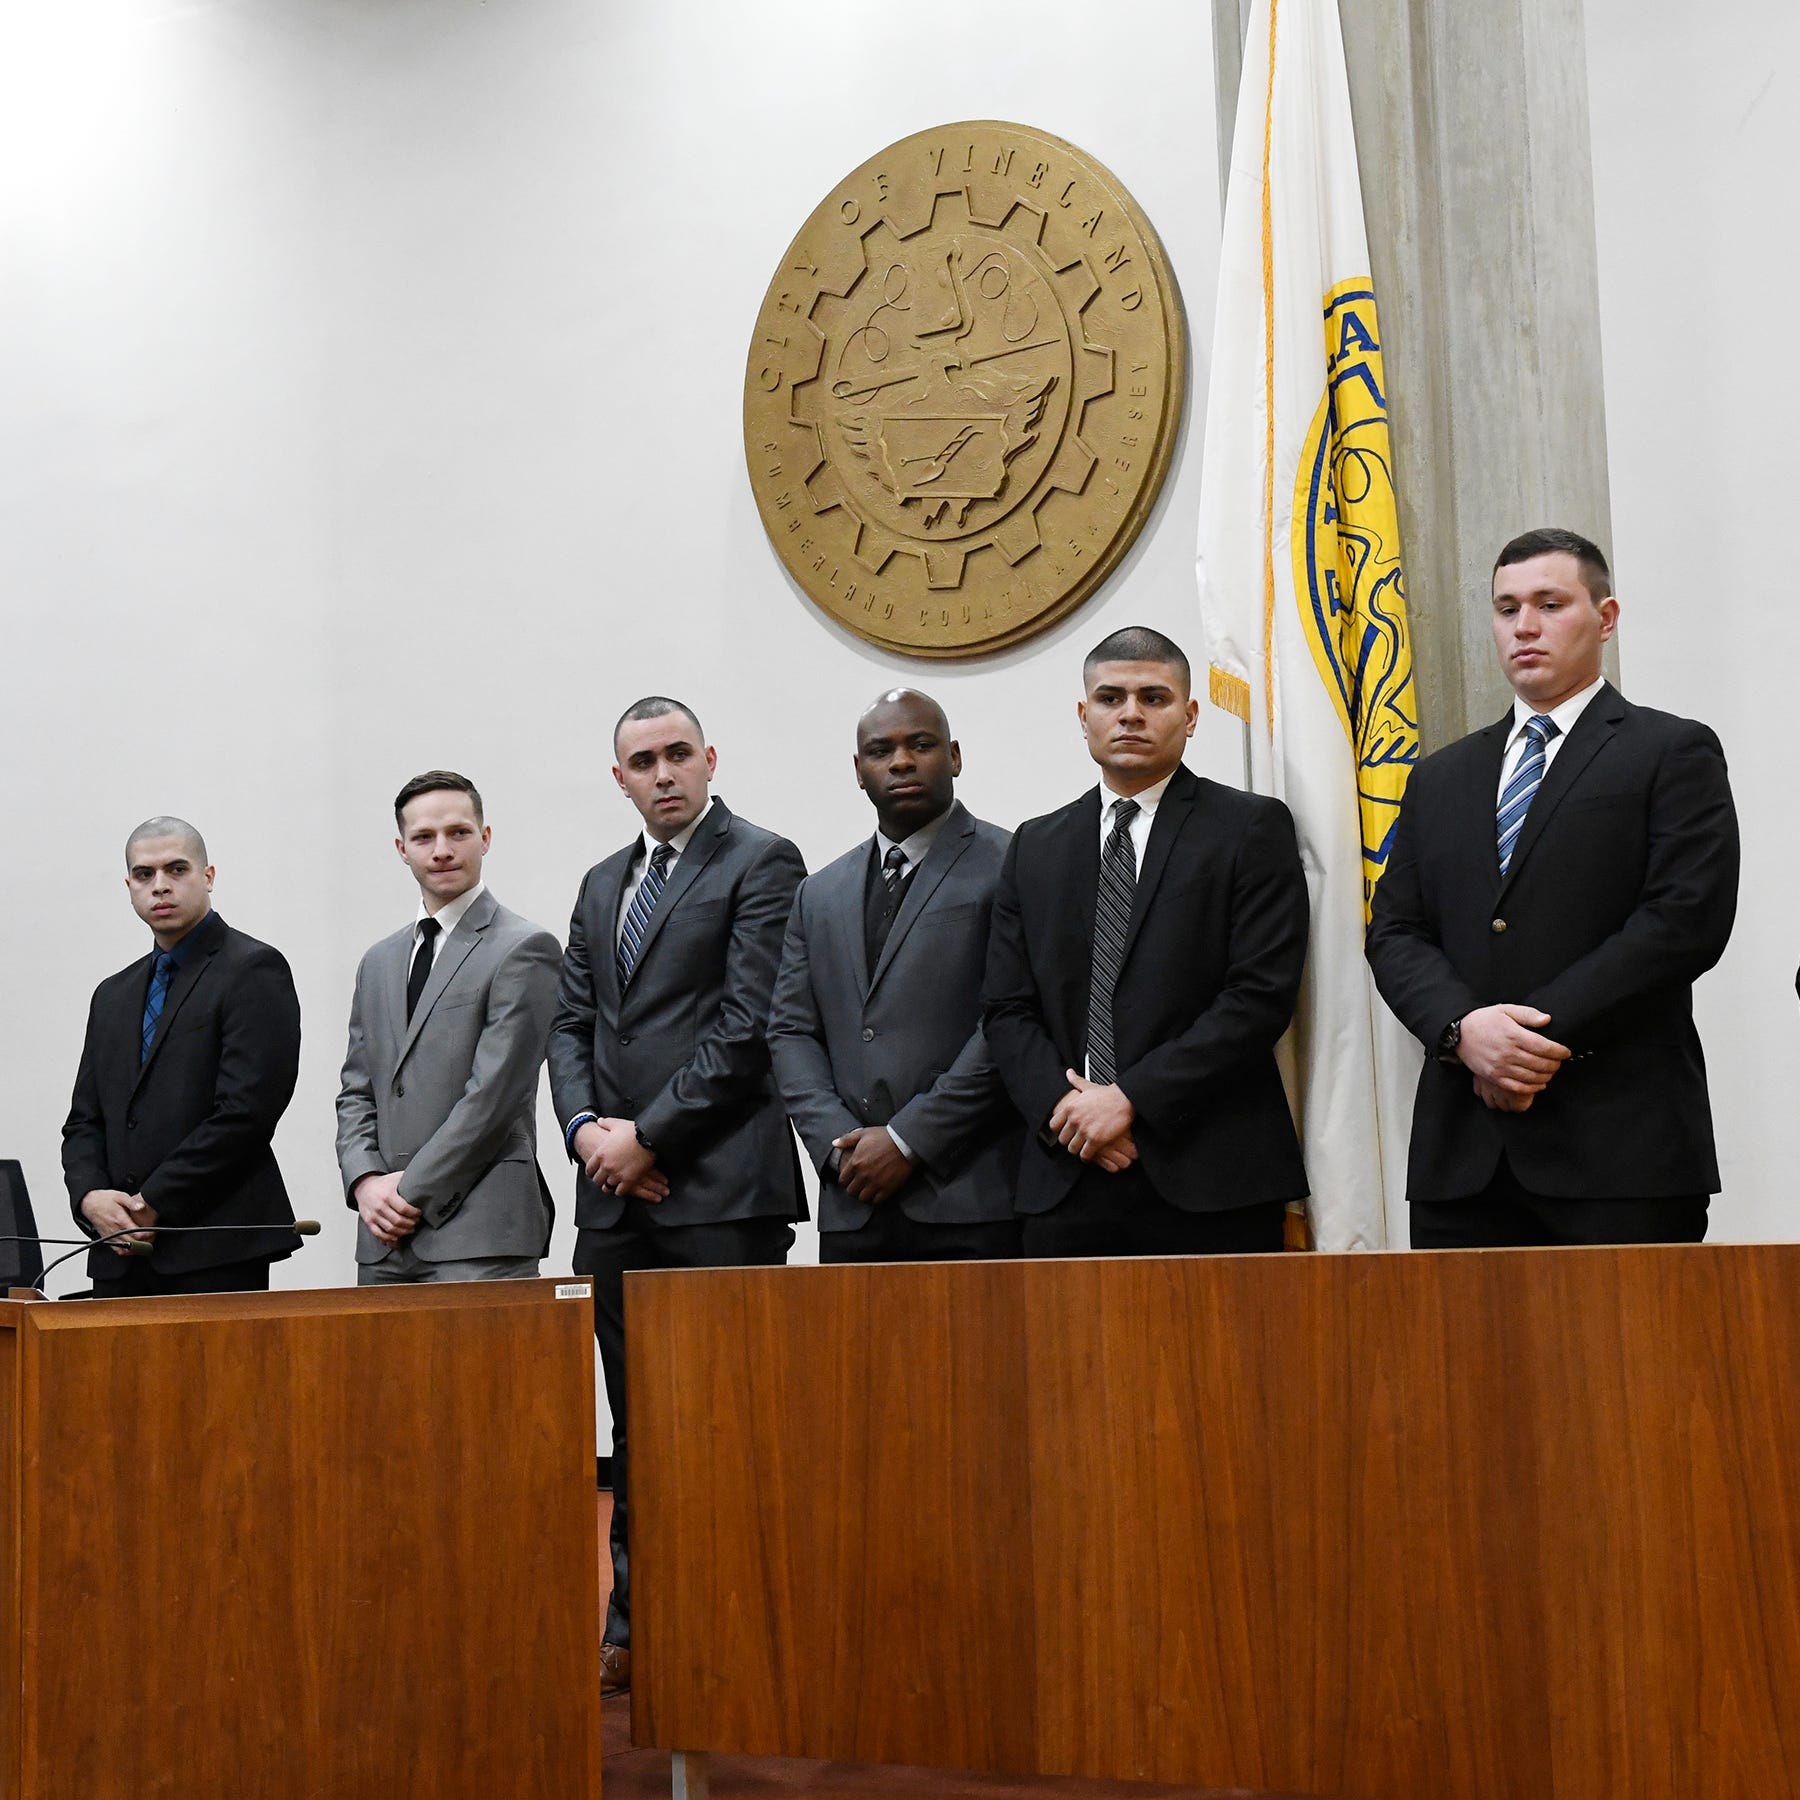 Eight new Vineland police officers take oath in City Hall ceremony